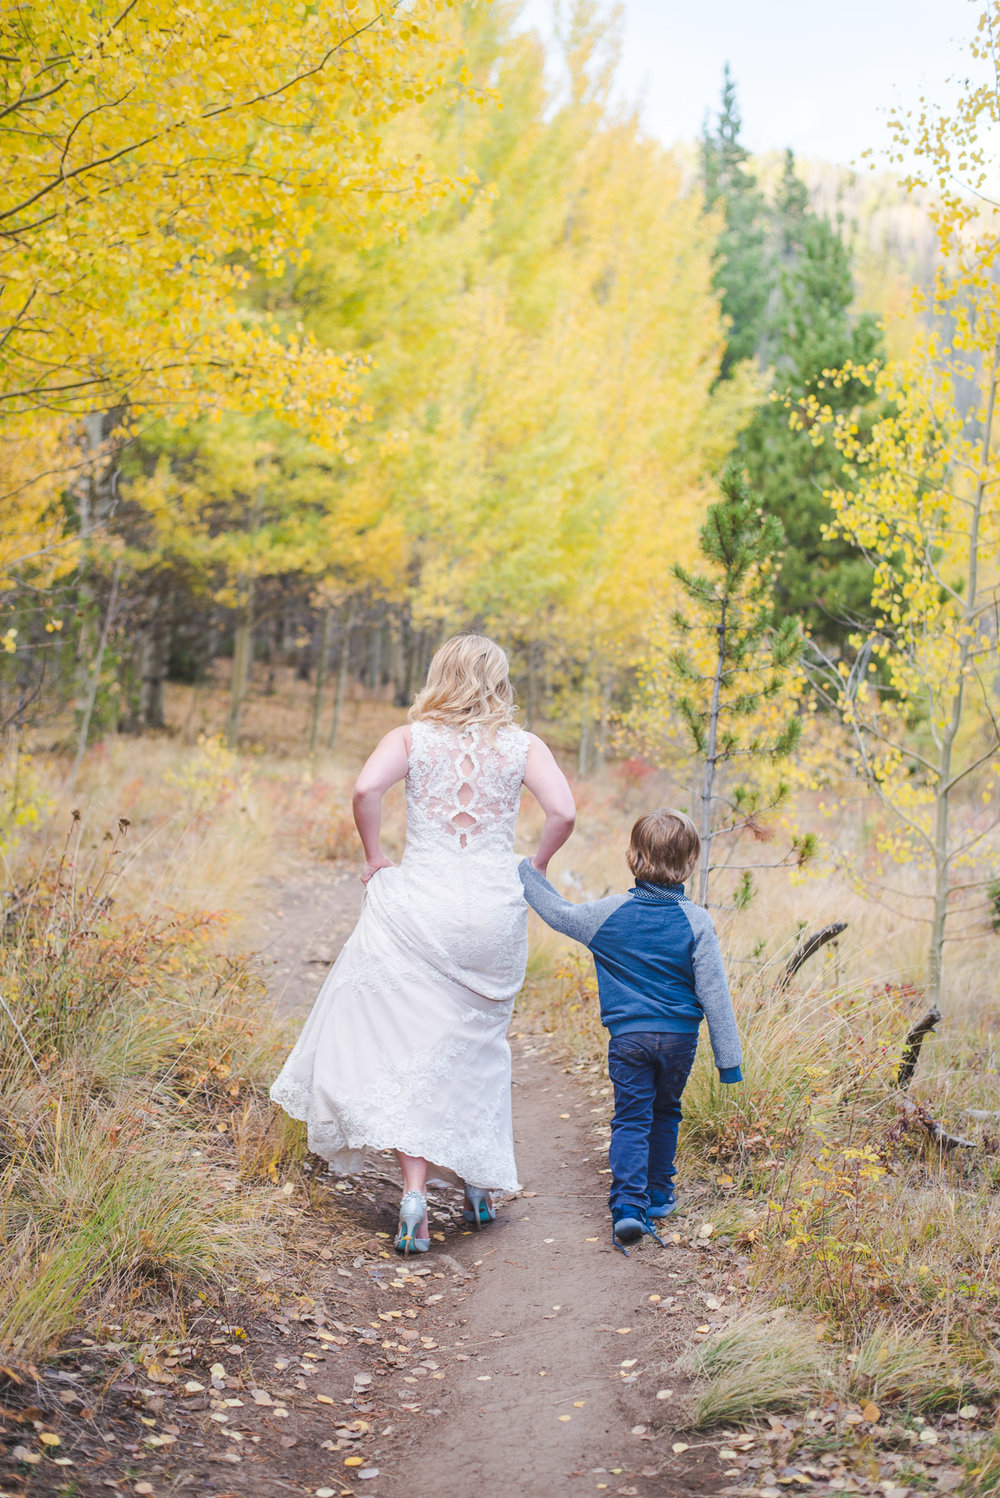 Walking away with young boy - mom and bride in one day | Autumn elopement in Breckenridge, Colorado | Summit Mountain Weddings